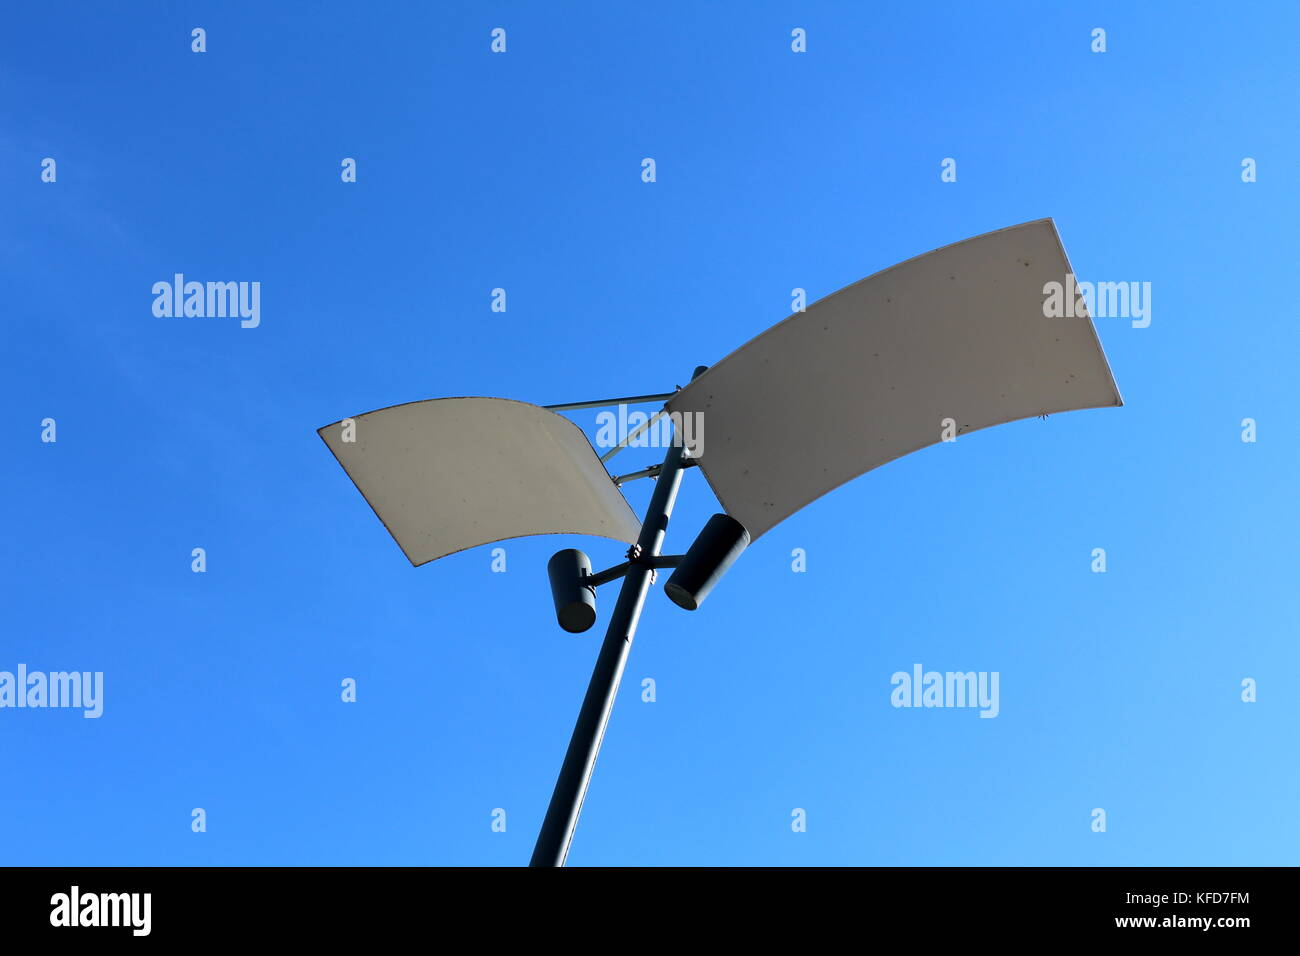 Modern LED lamp post with two reflecting panels and two LED lamps pointed at them - Stock Image